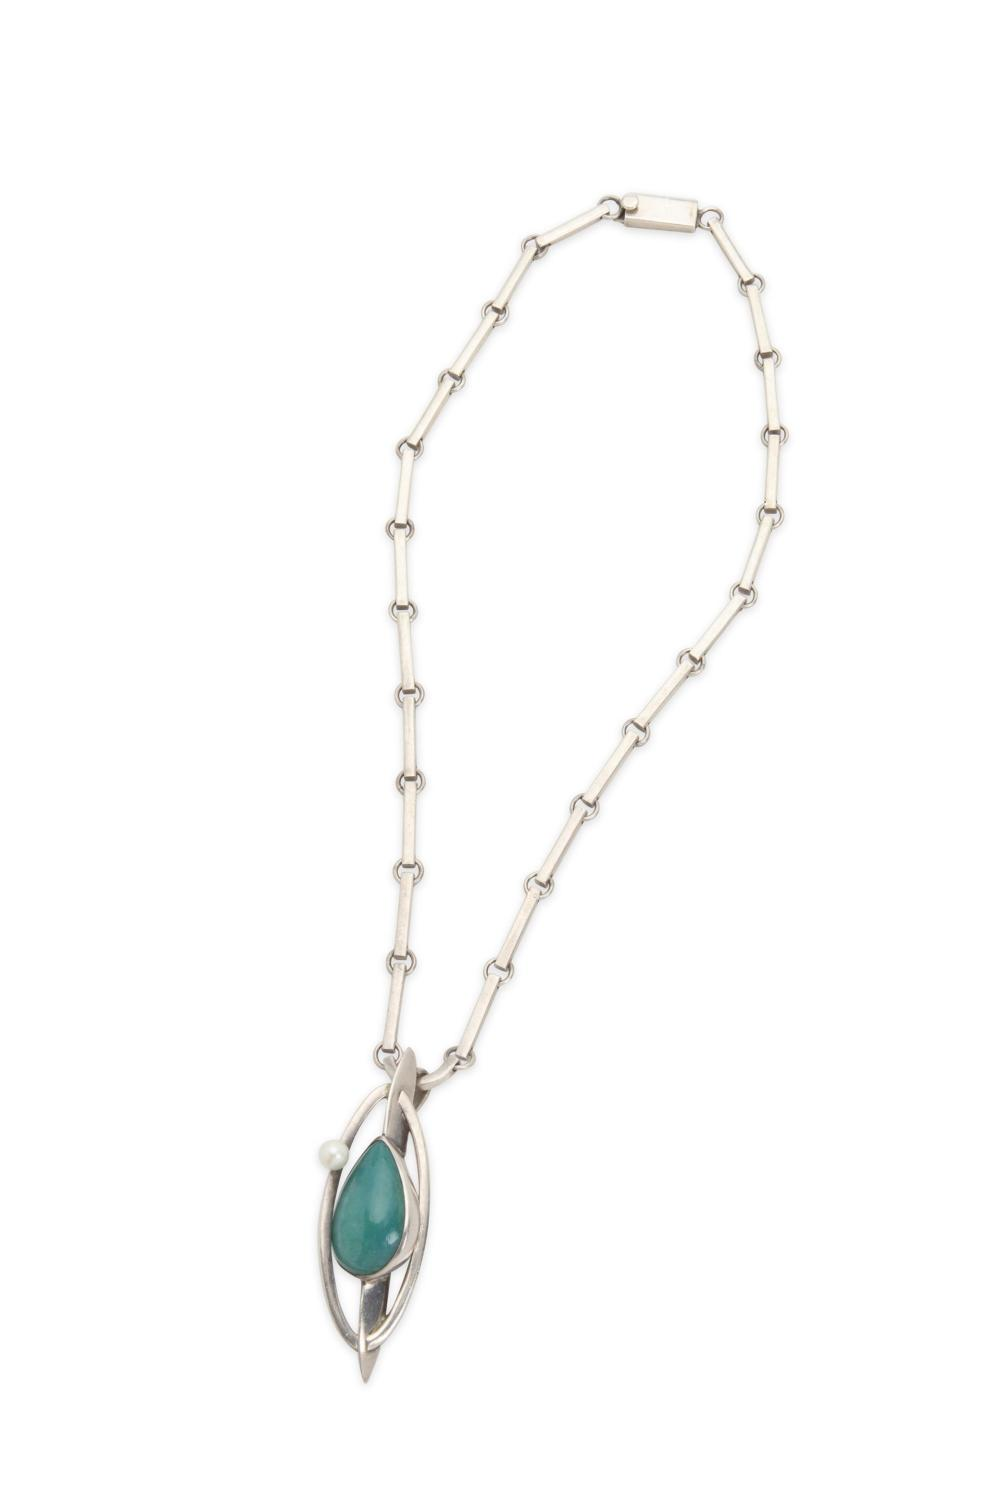 An Antonio Pineda silver, amazonite and pearl necklace